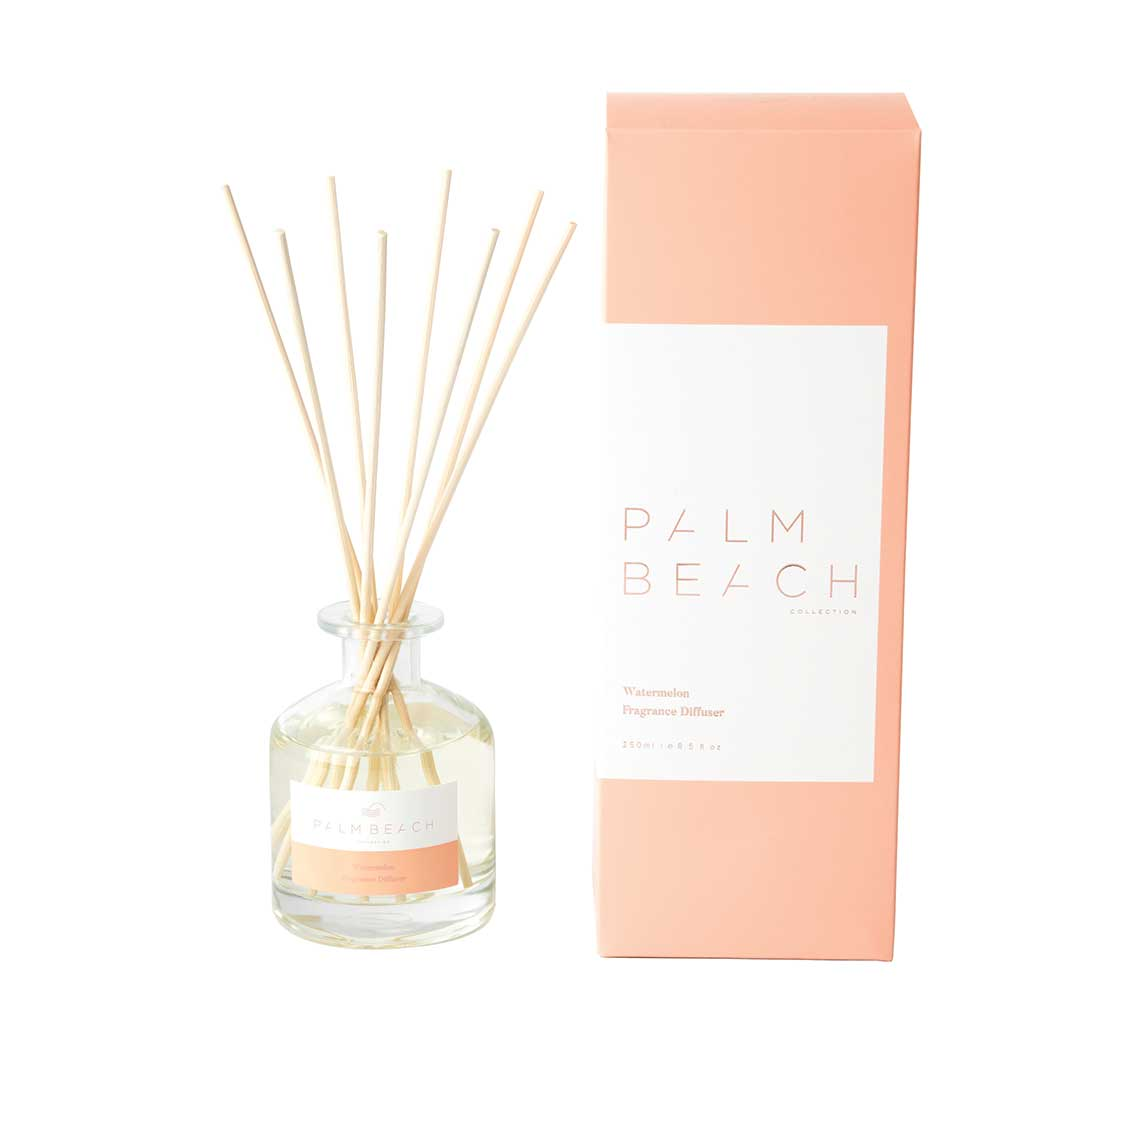 Palm Beach Collection | Watermelon 250ml Fragrance Diffuser | Salt & Sand Women's Clothing & Accessories Inverloch